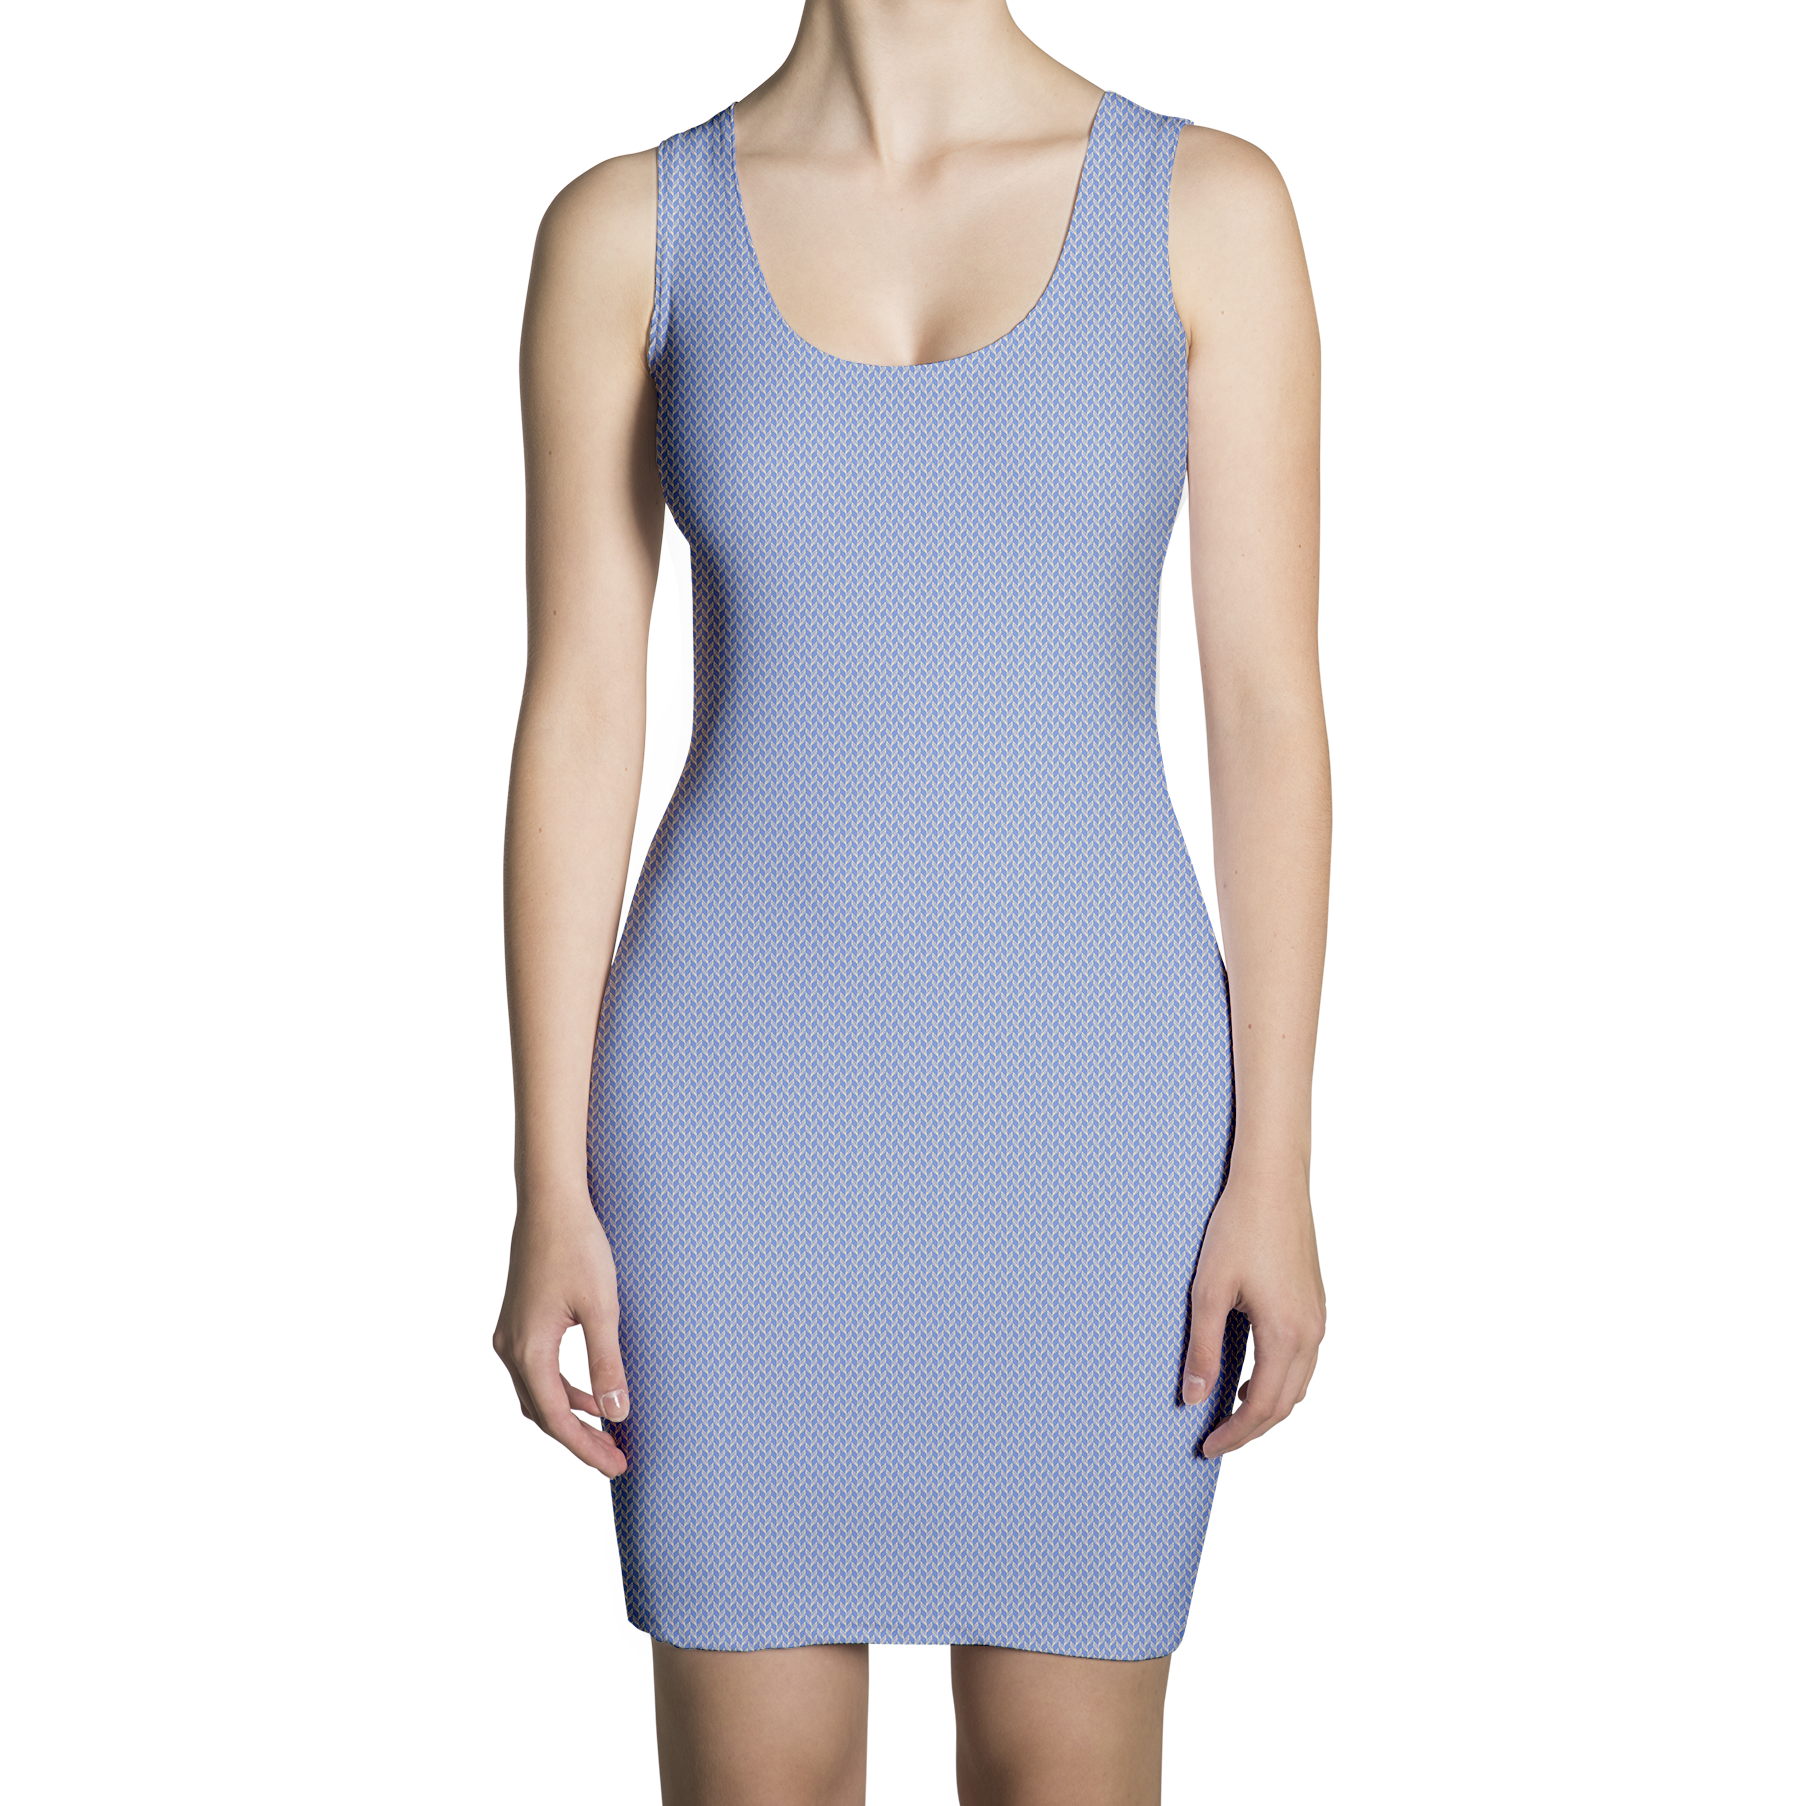 The St Tropez Dress